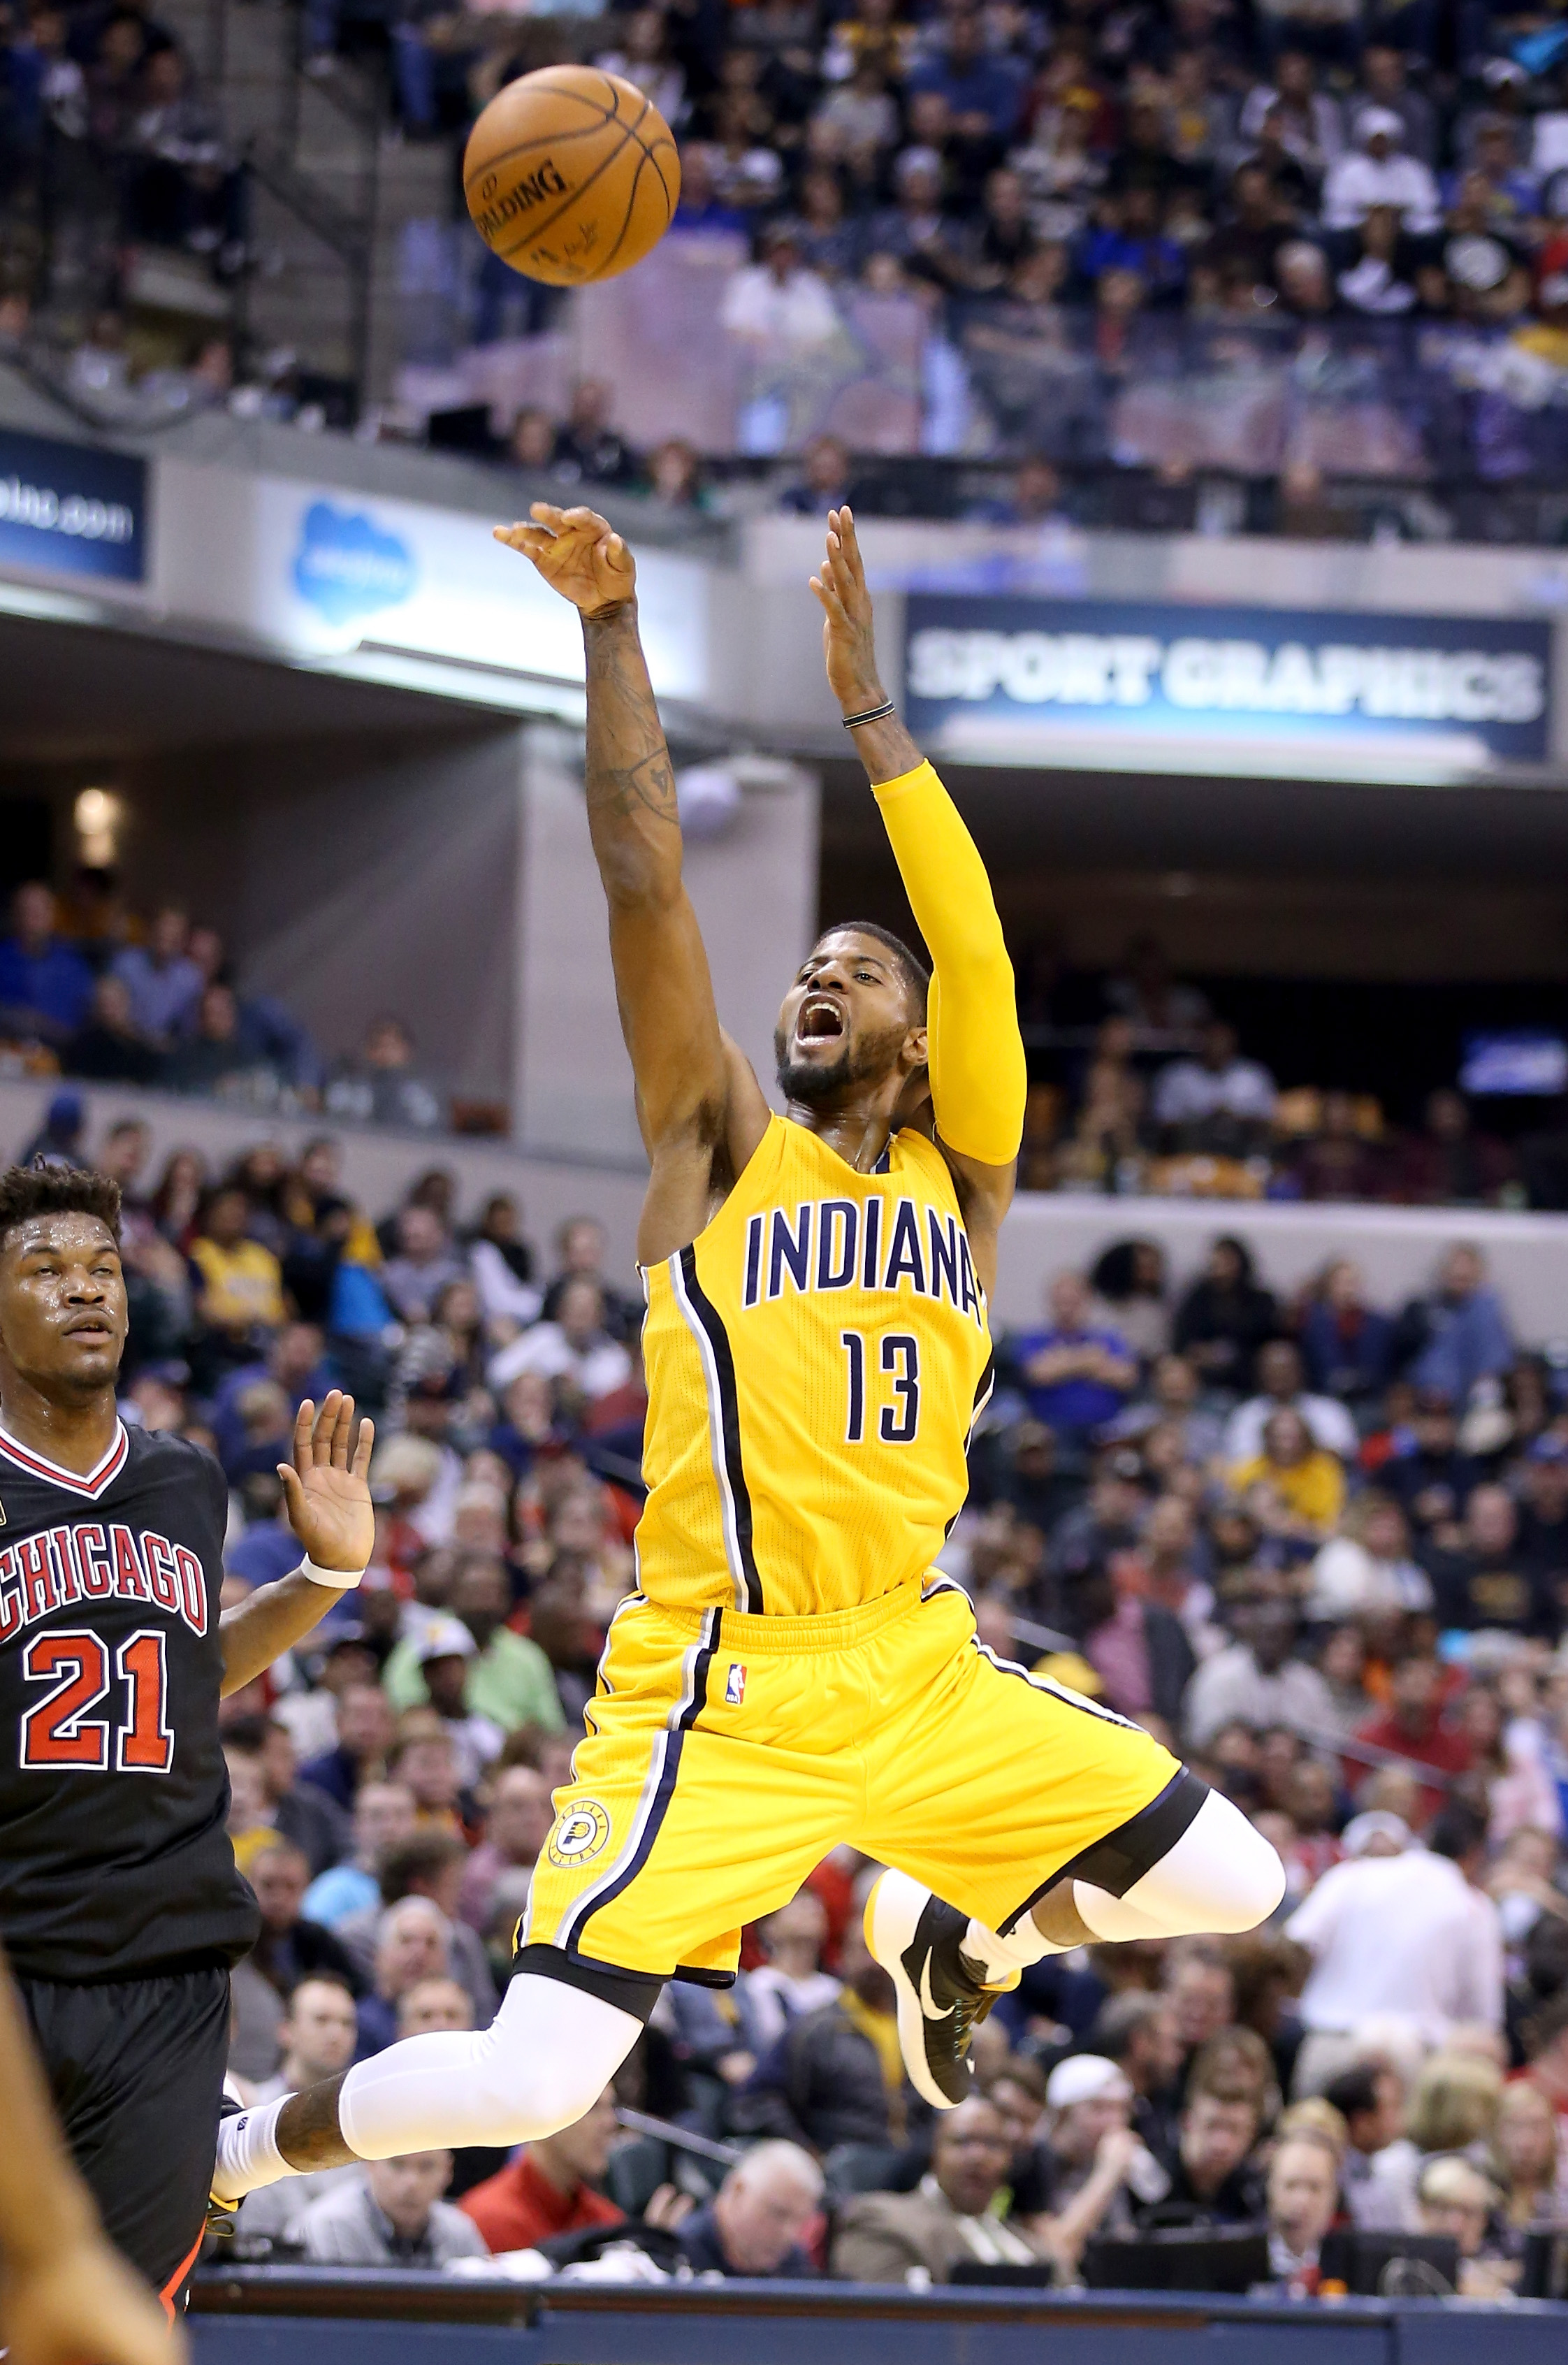 Paul George has been almost as unstoppable as Stephen Curry this season